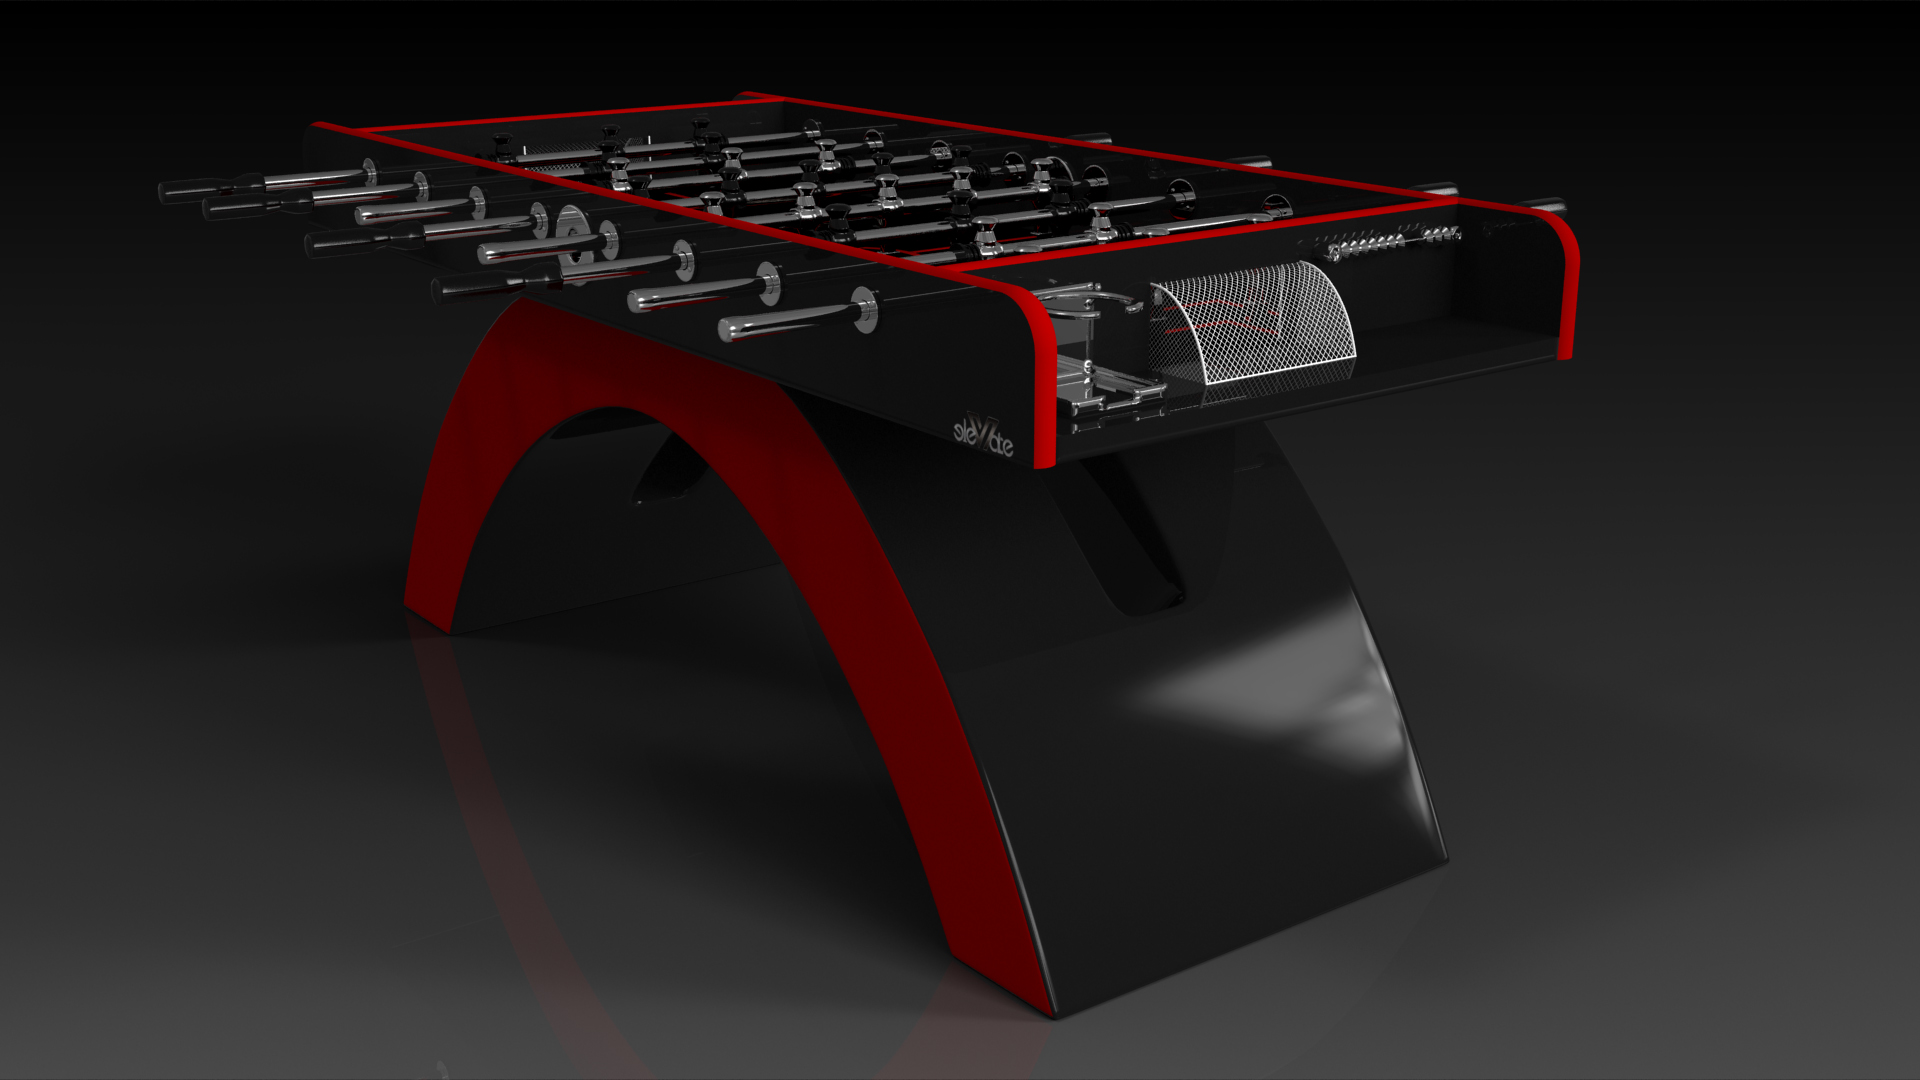 Zenith Red and Black Foosball